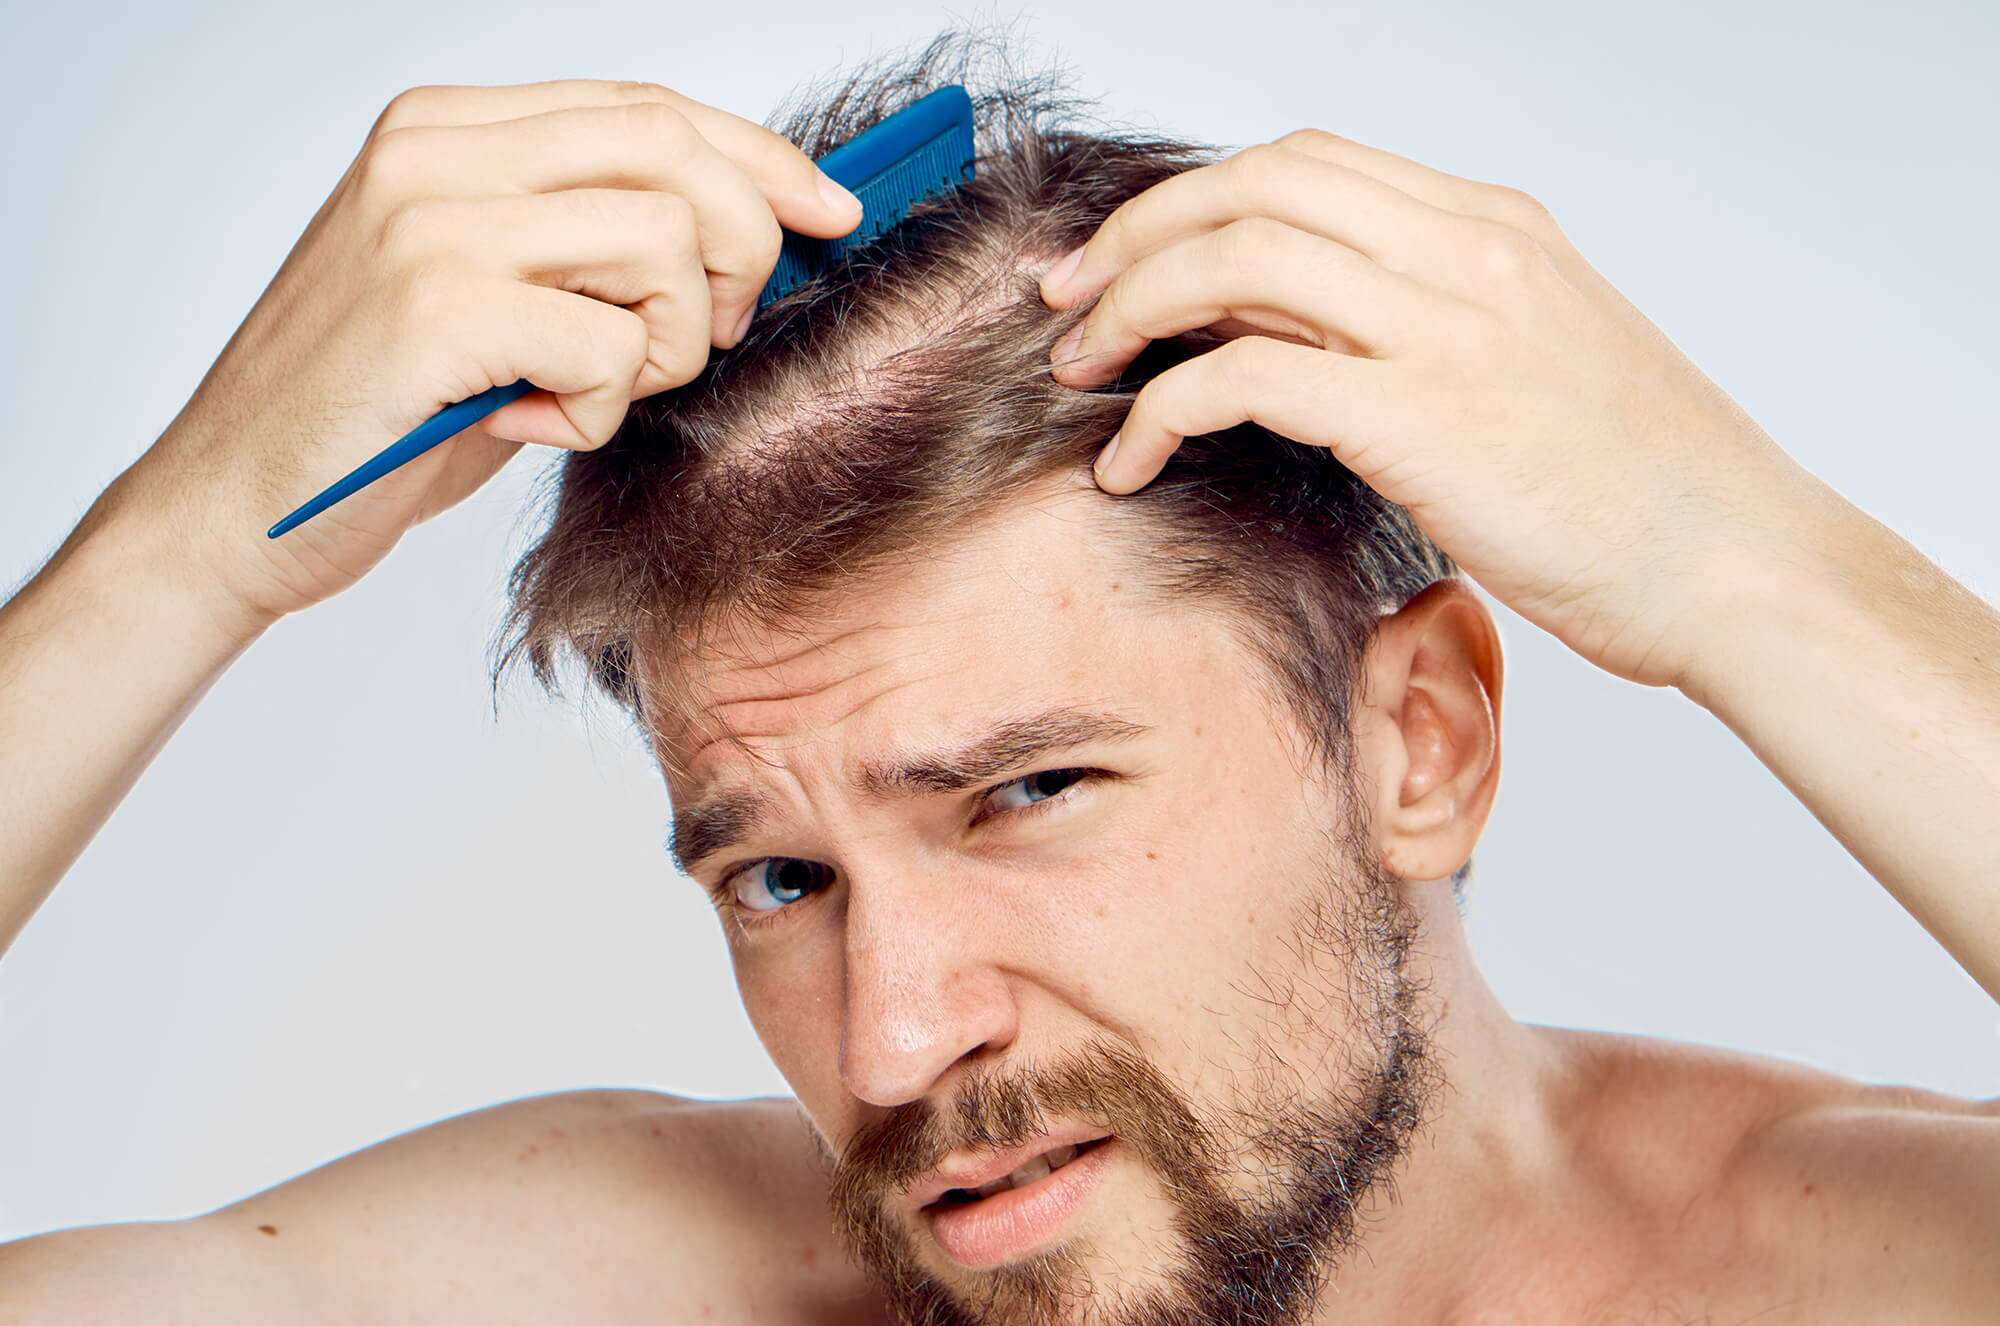 A man, combing his hair, looking at his thinning hair with concern